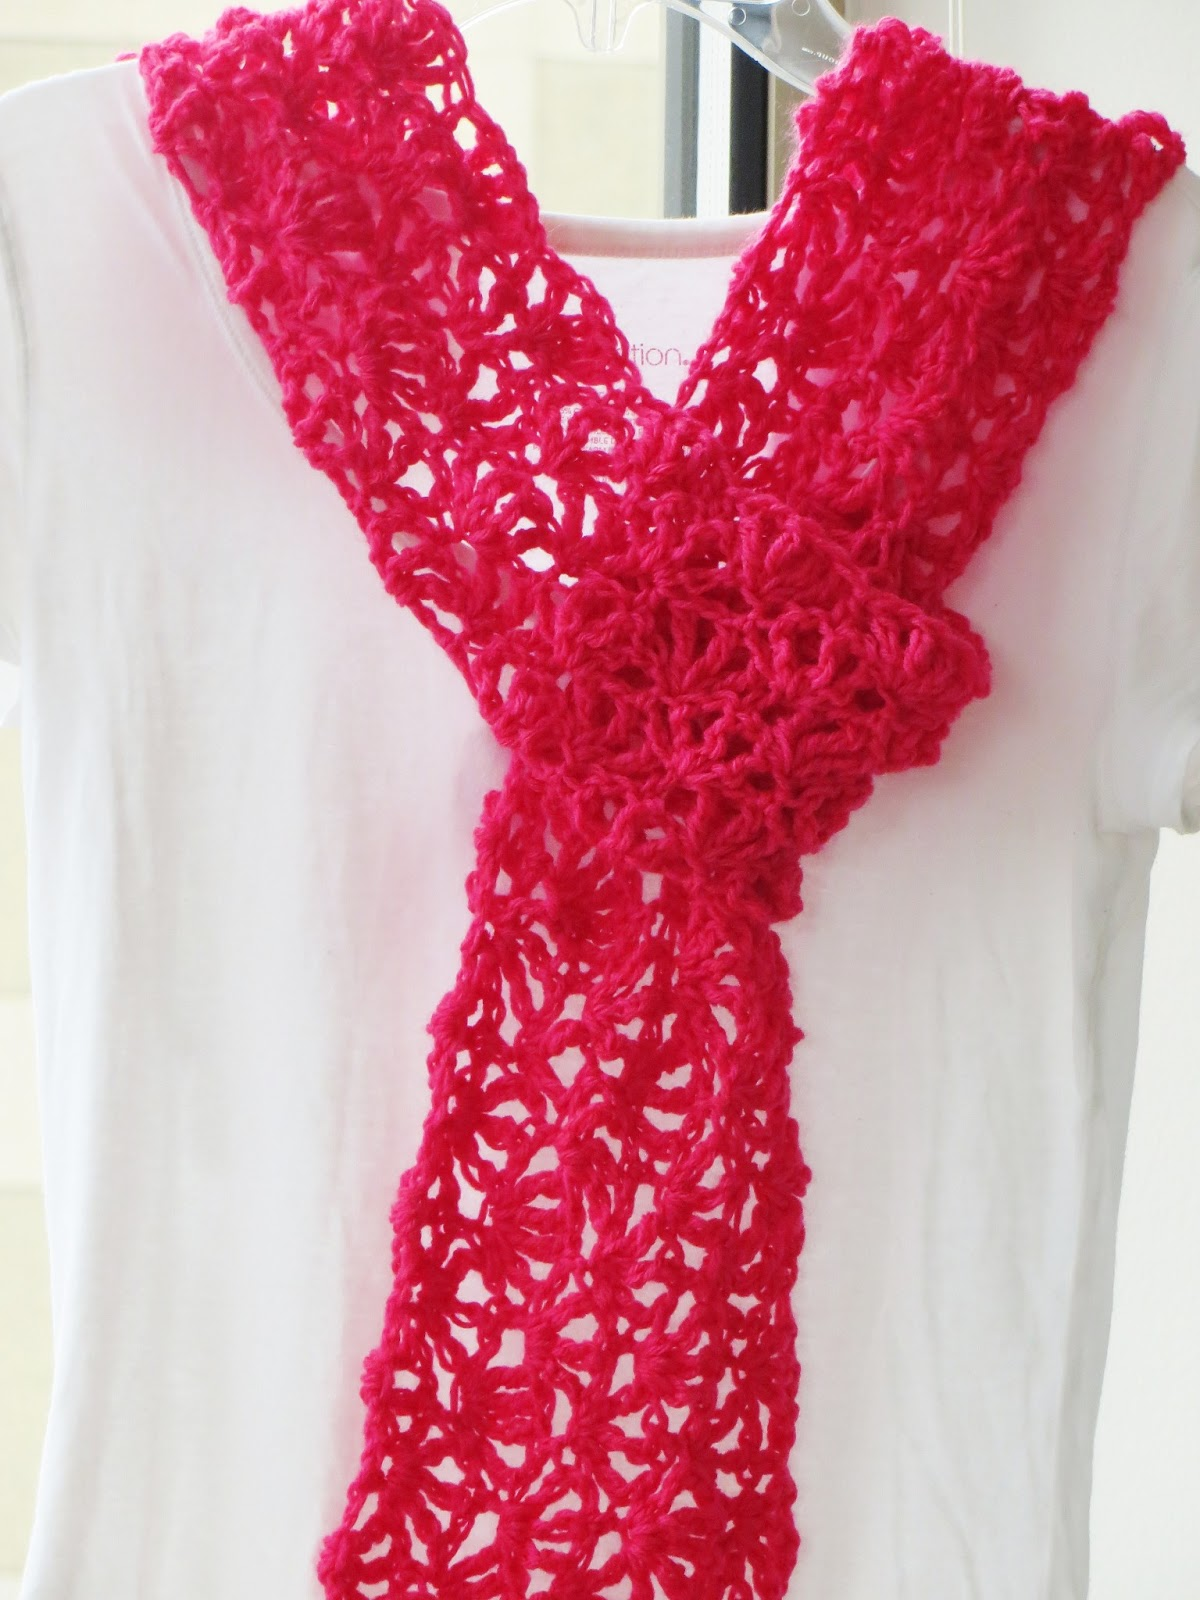 Crochet Pattern For Scarf Easy : Crochet Dreamz: Alana Lacy Scarf, Free Crochet Pattern